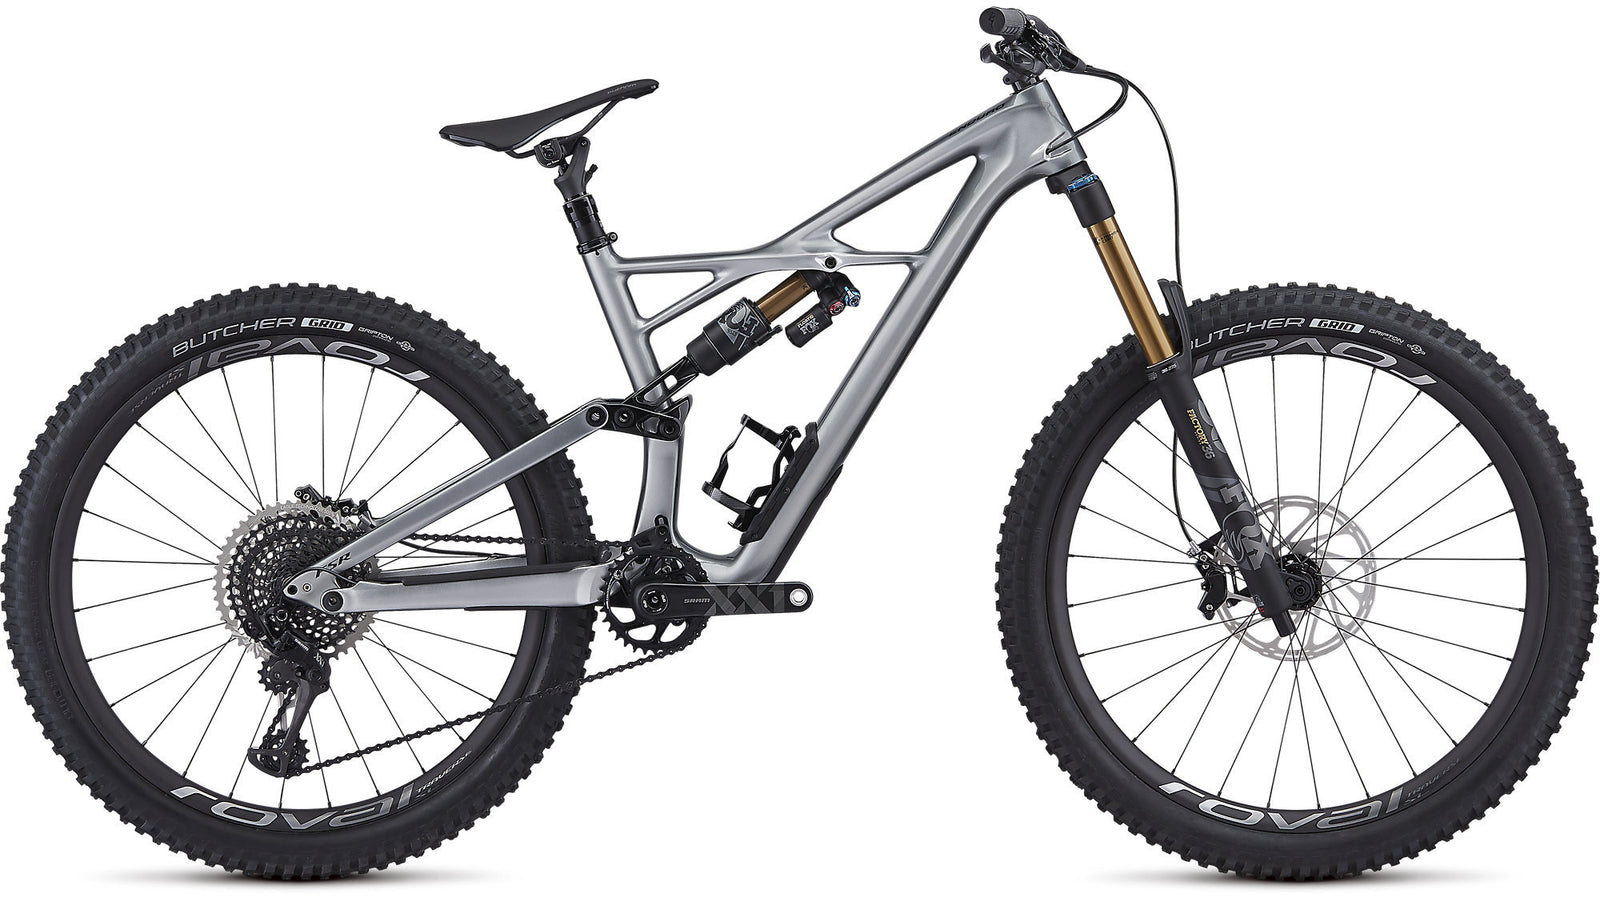 758e4efe6 Specialized 2019 S-Works Enduro 27.5 – Chain Reaction